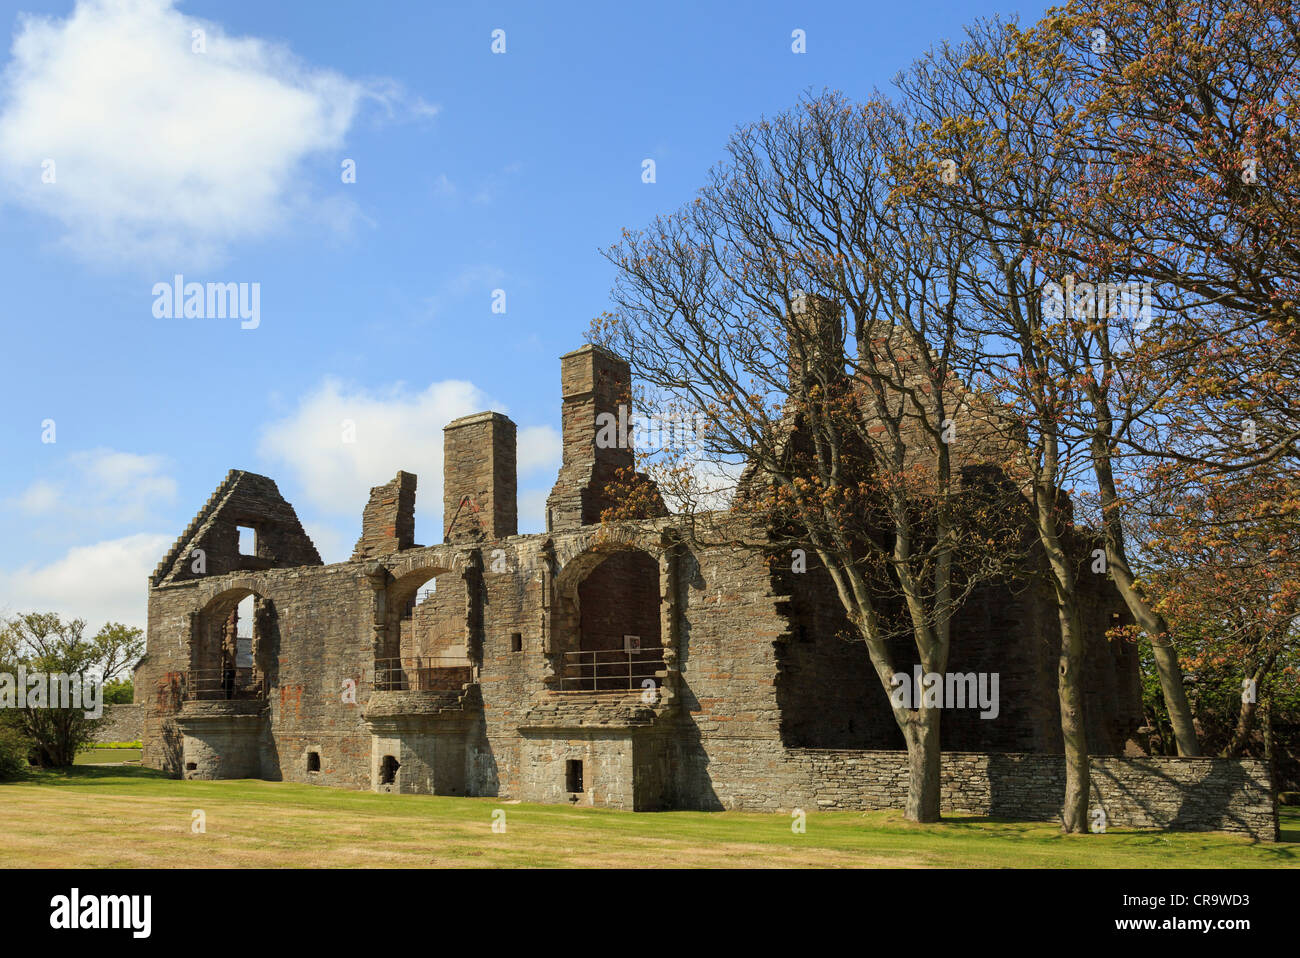 Remains of the 16th century Earl's Palace ruins of Renaissance building. Palace Road, Kirkwall, Orkney Islands, - Stock Image